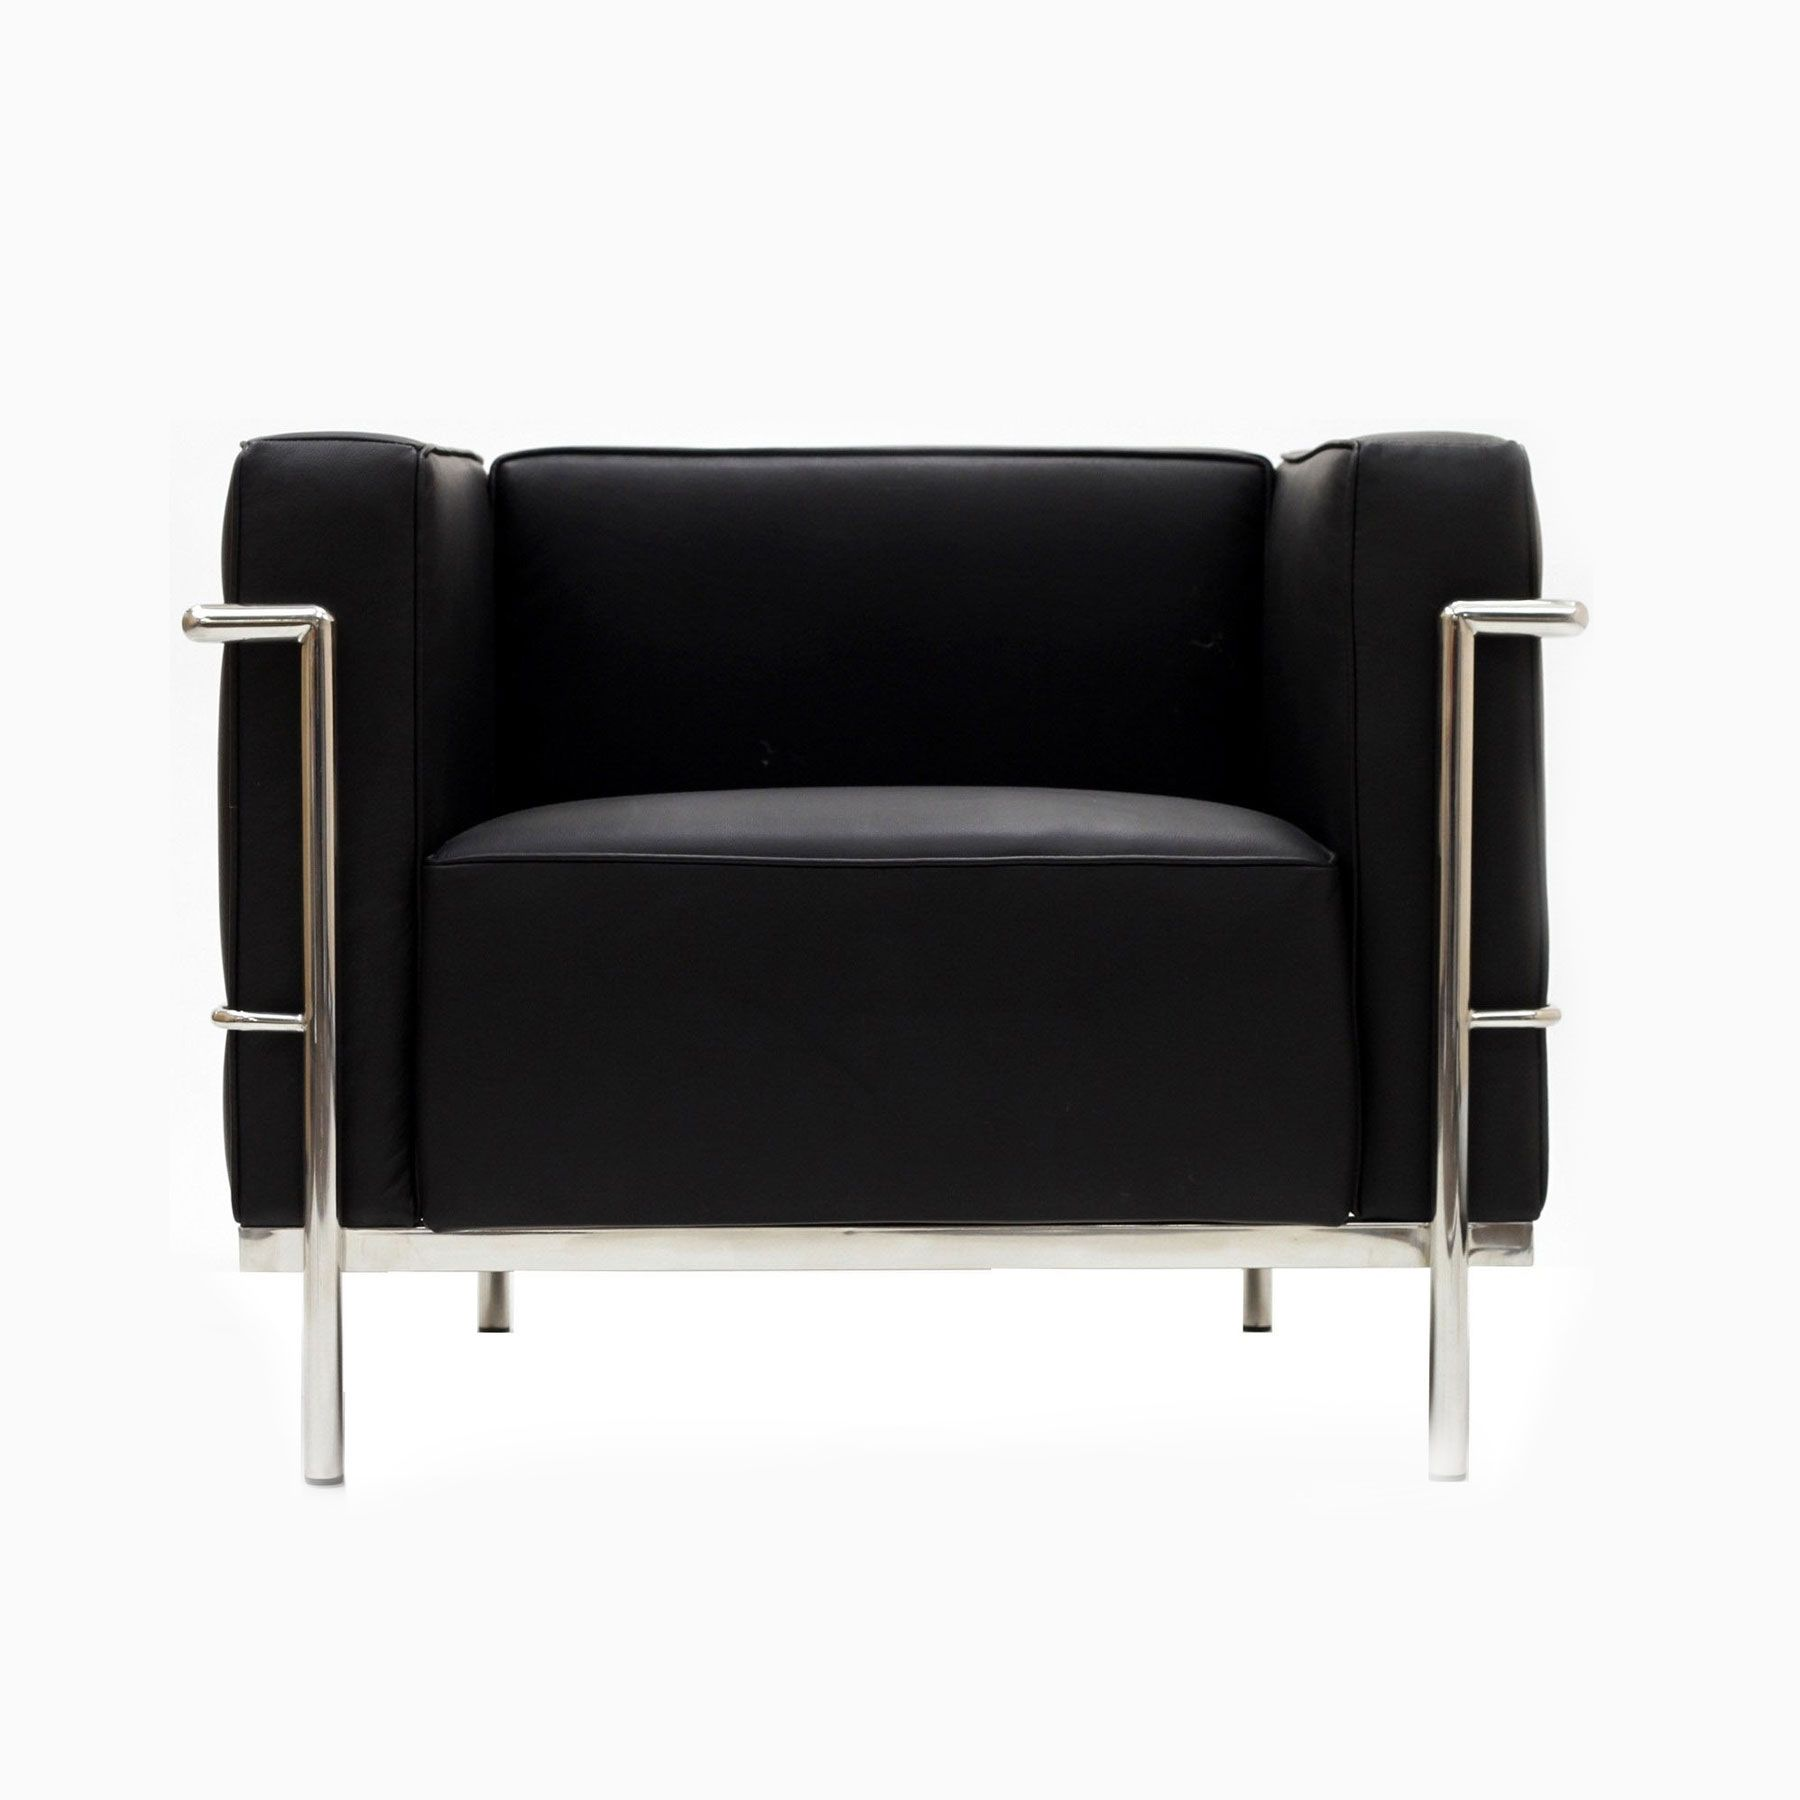 Lc2 Le Corbusier Cassina Occasion large modern cube chair in black | dotandbo (with images